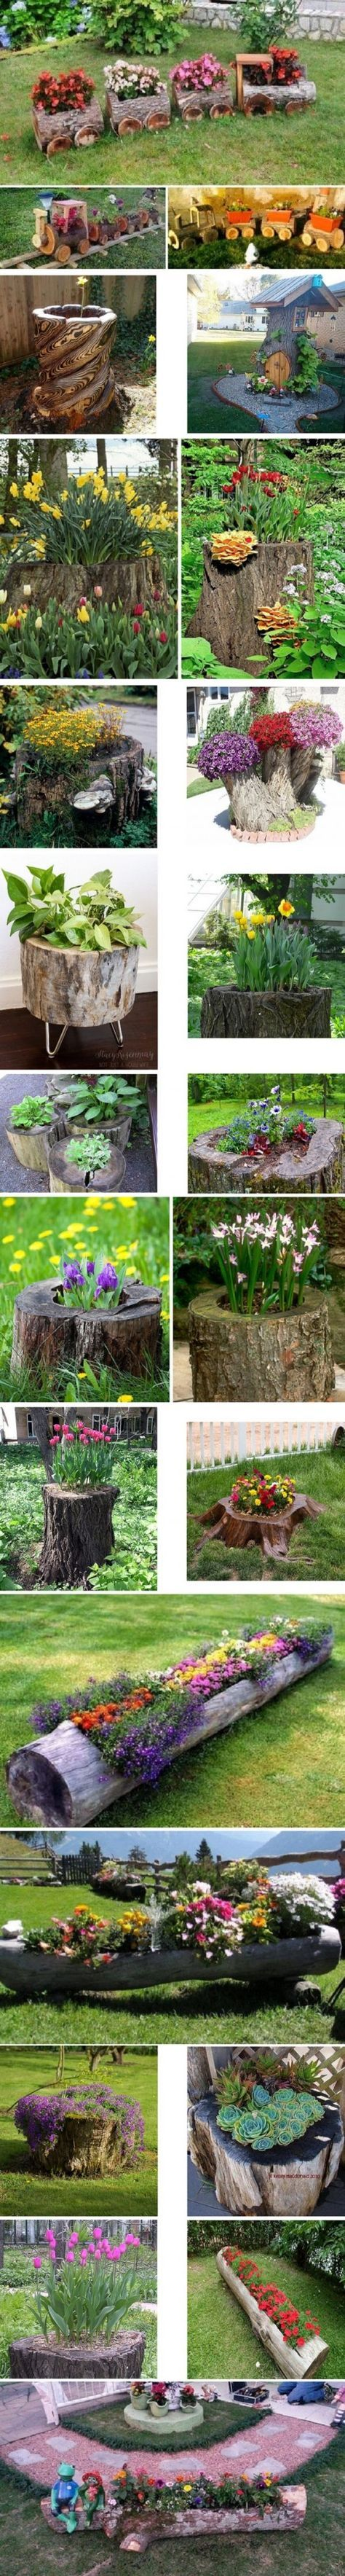 24 Tree Stumps Turned Into Beautiful Flower Planters | WoodworkerZ.com